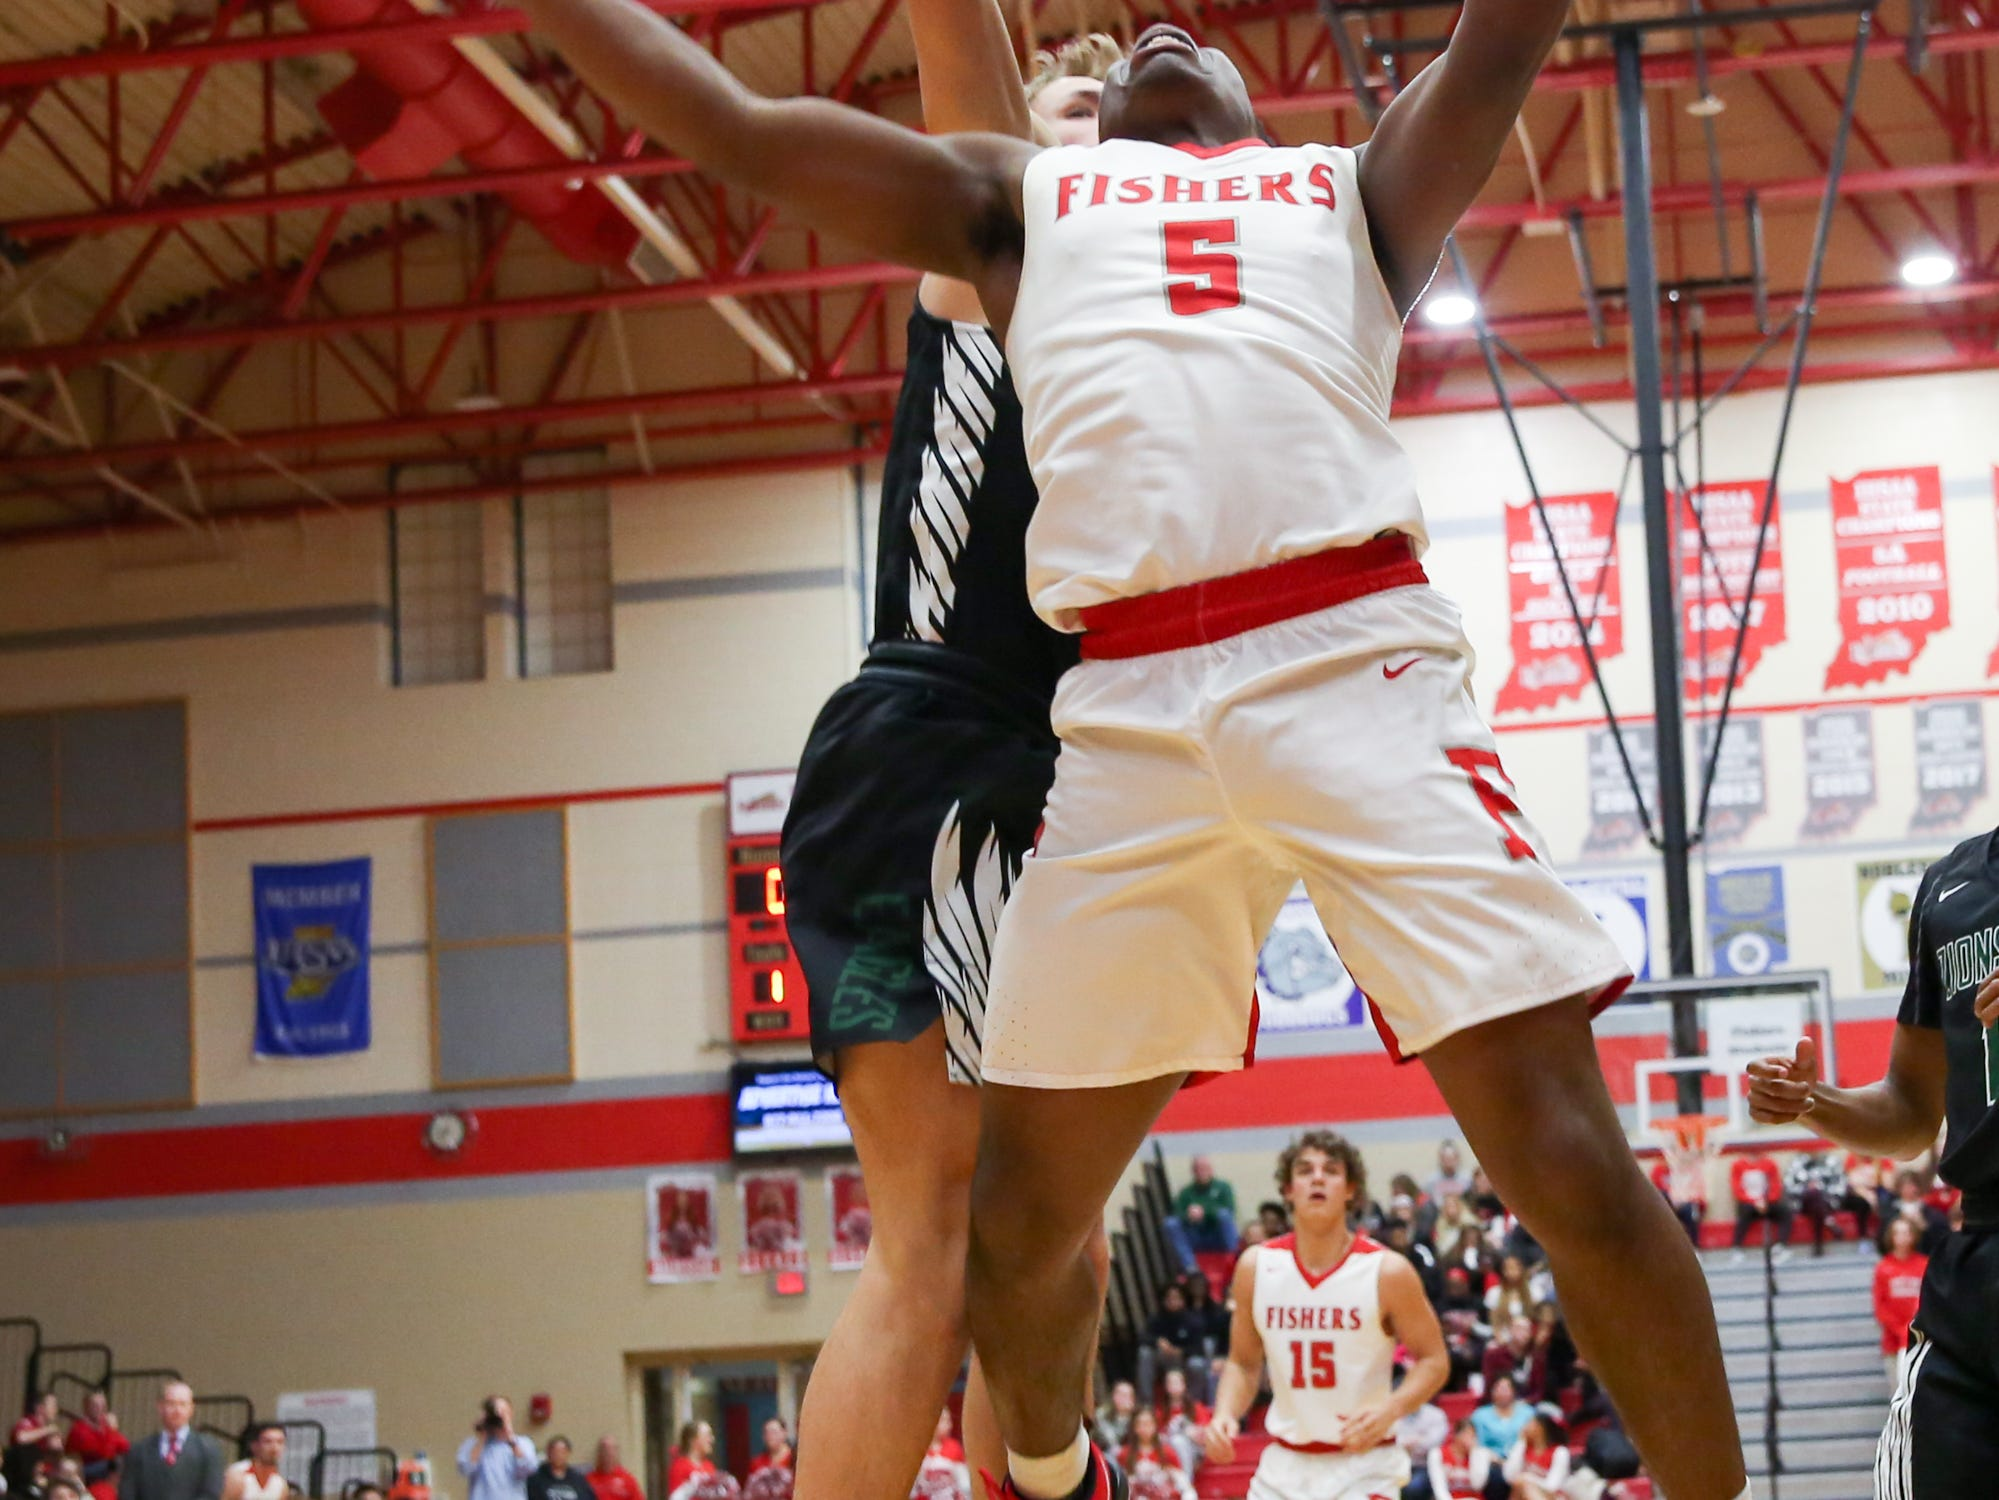 Fisher's Willie Jackson (5) takes the ball up for a shot during the first half of Zionsville vs. Fishers high school boys varsity basketball game held at Fishers High School, February 15, 2019.